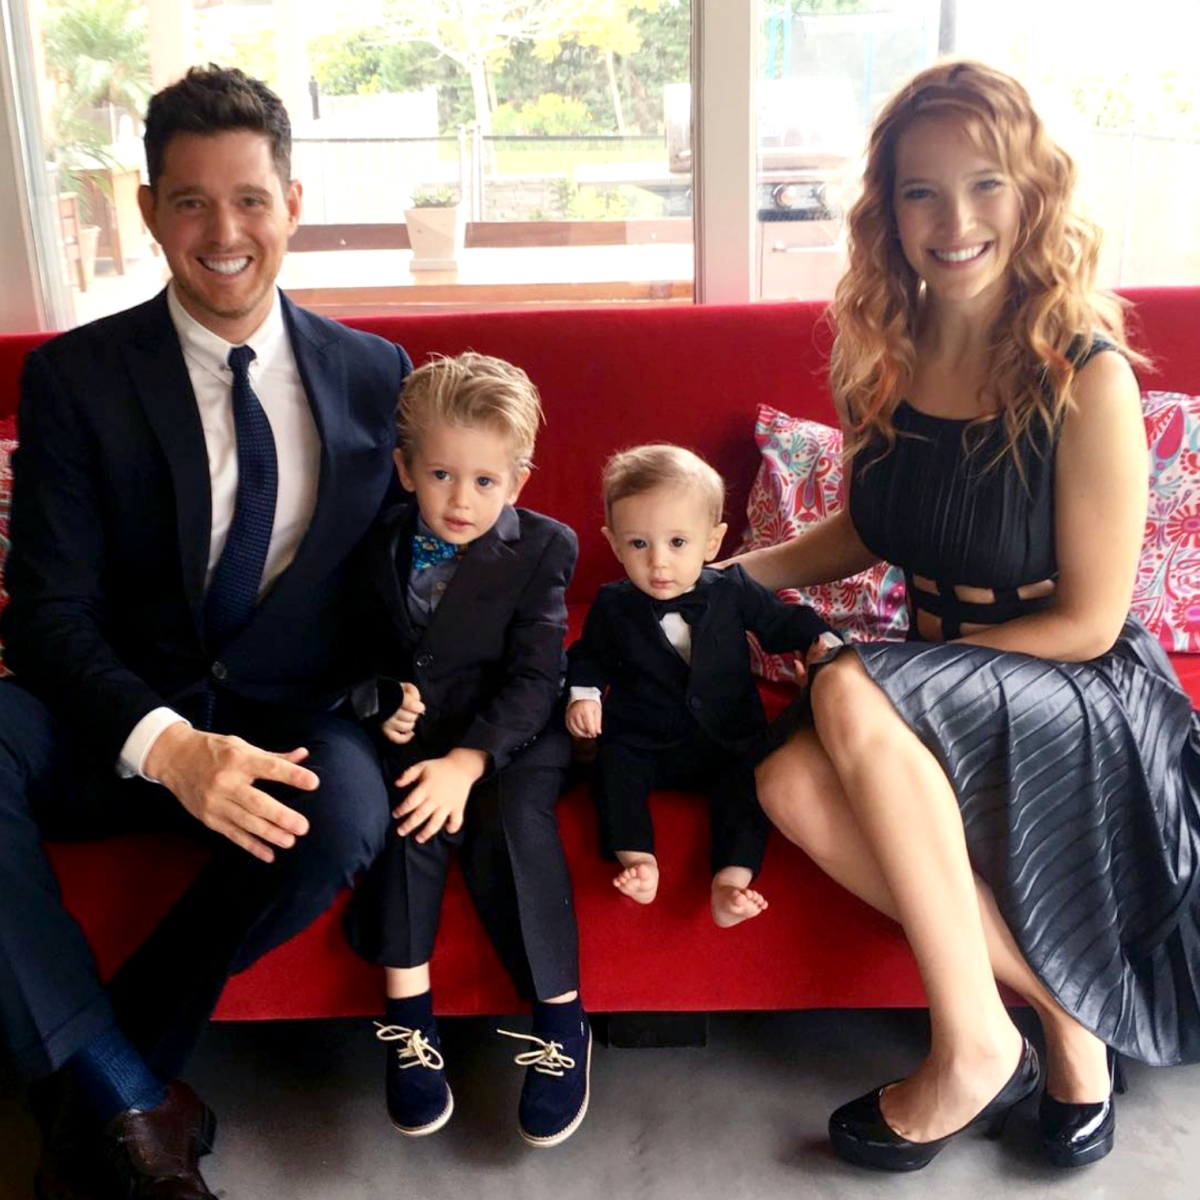 The Regrettable Education of Michael Buble